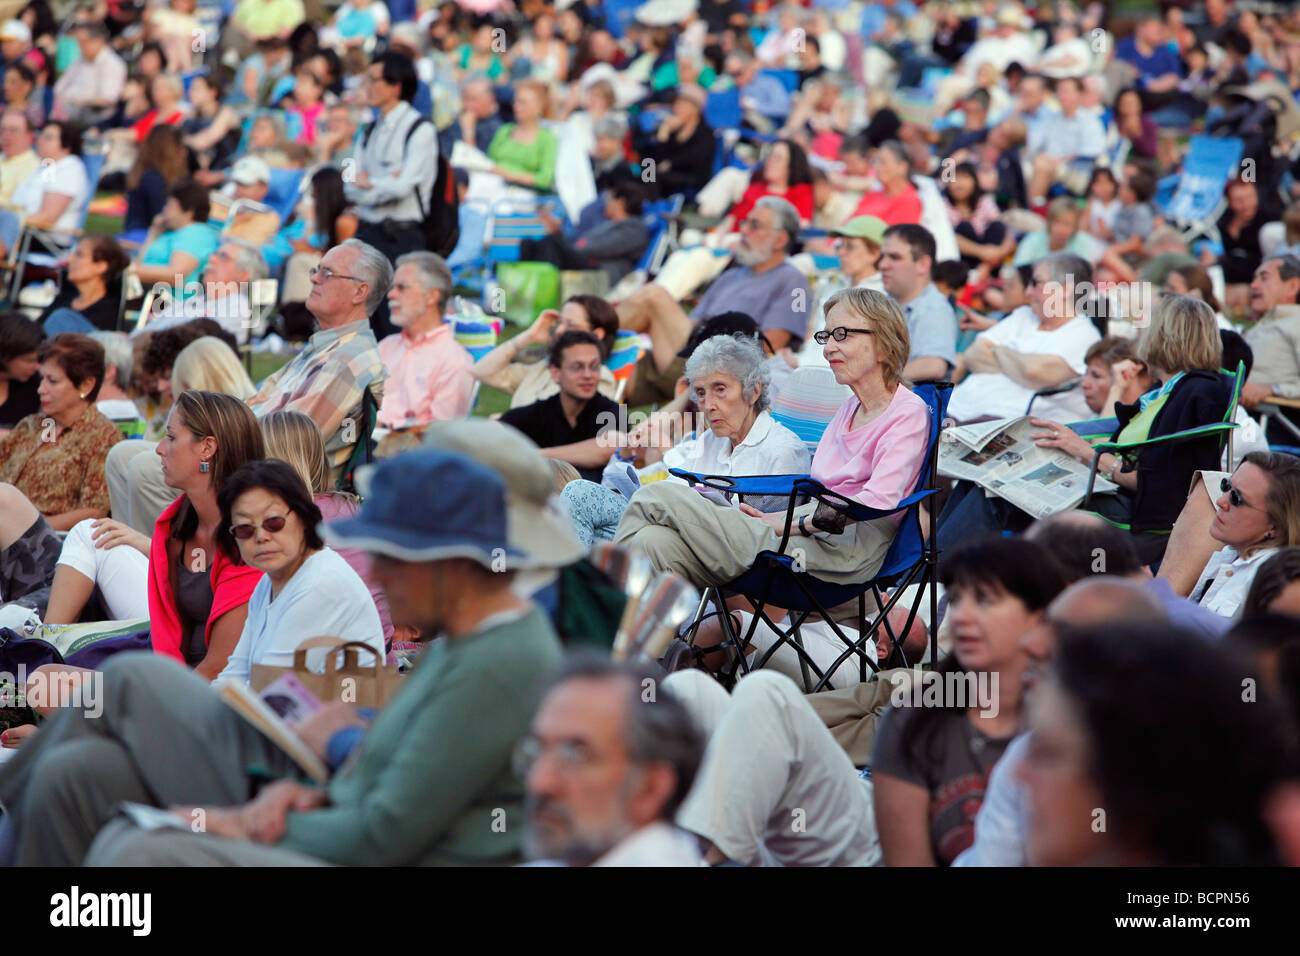 Concert audience at the Hatch Shell on the Esplanade, Boston - Stock Image